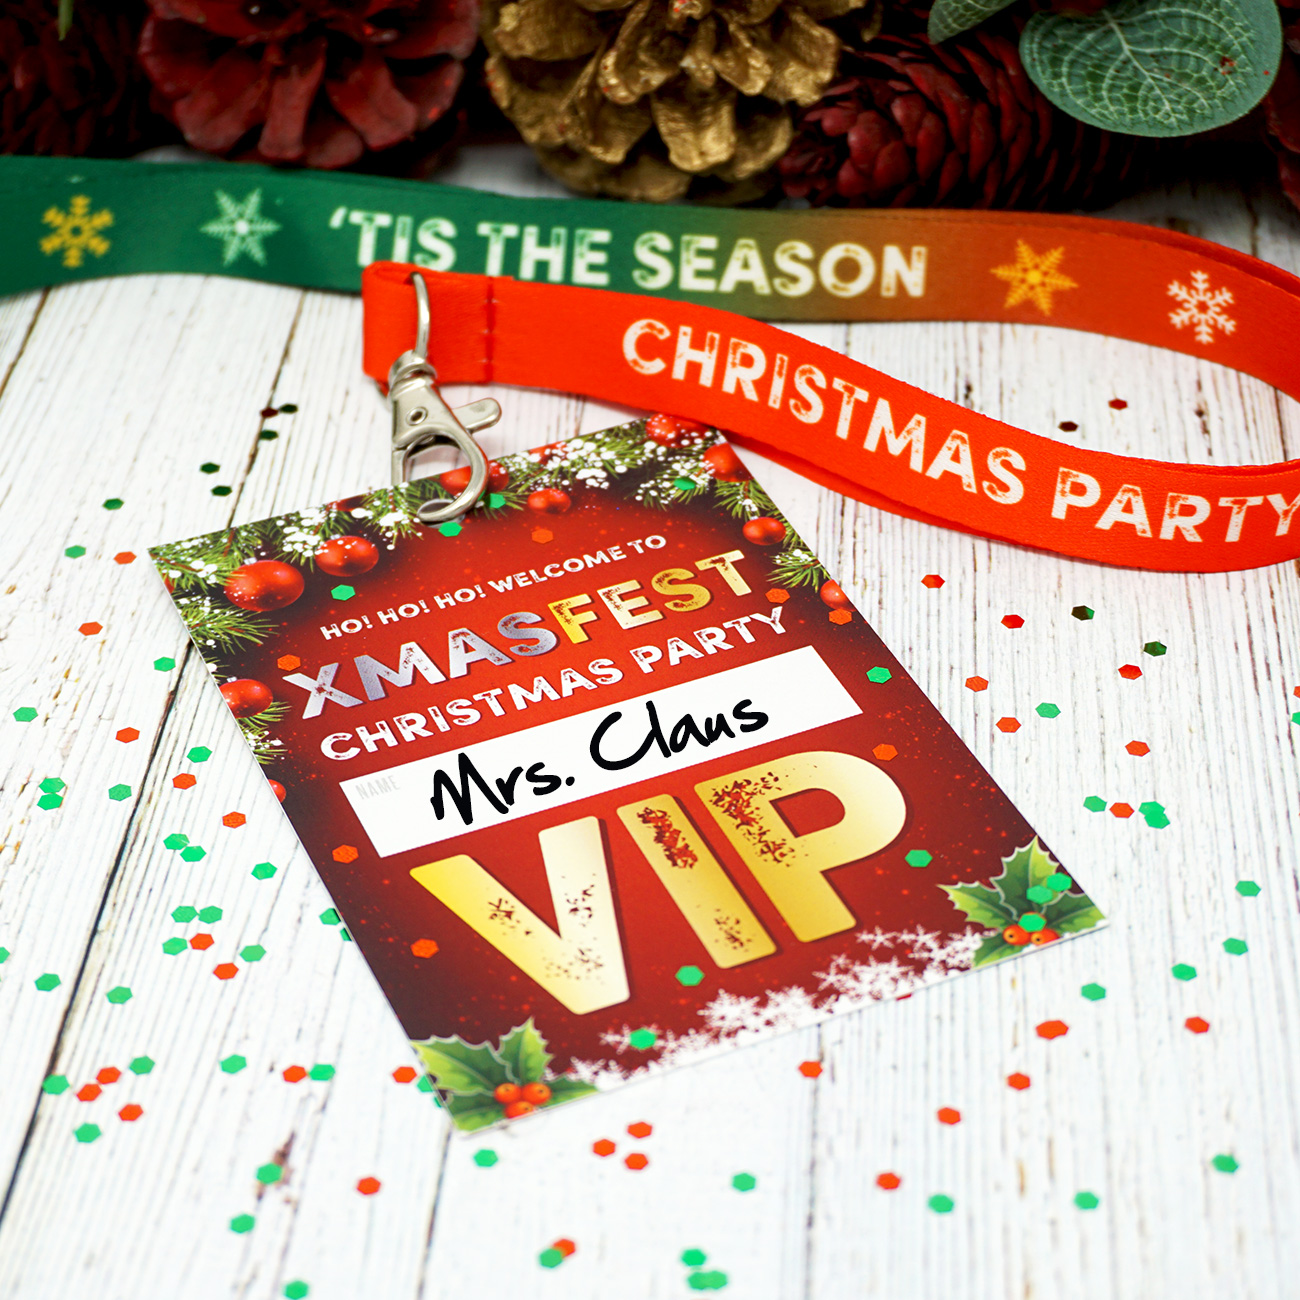 XMAS FEST christmas party vip lanyard